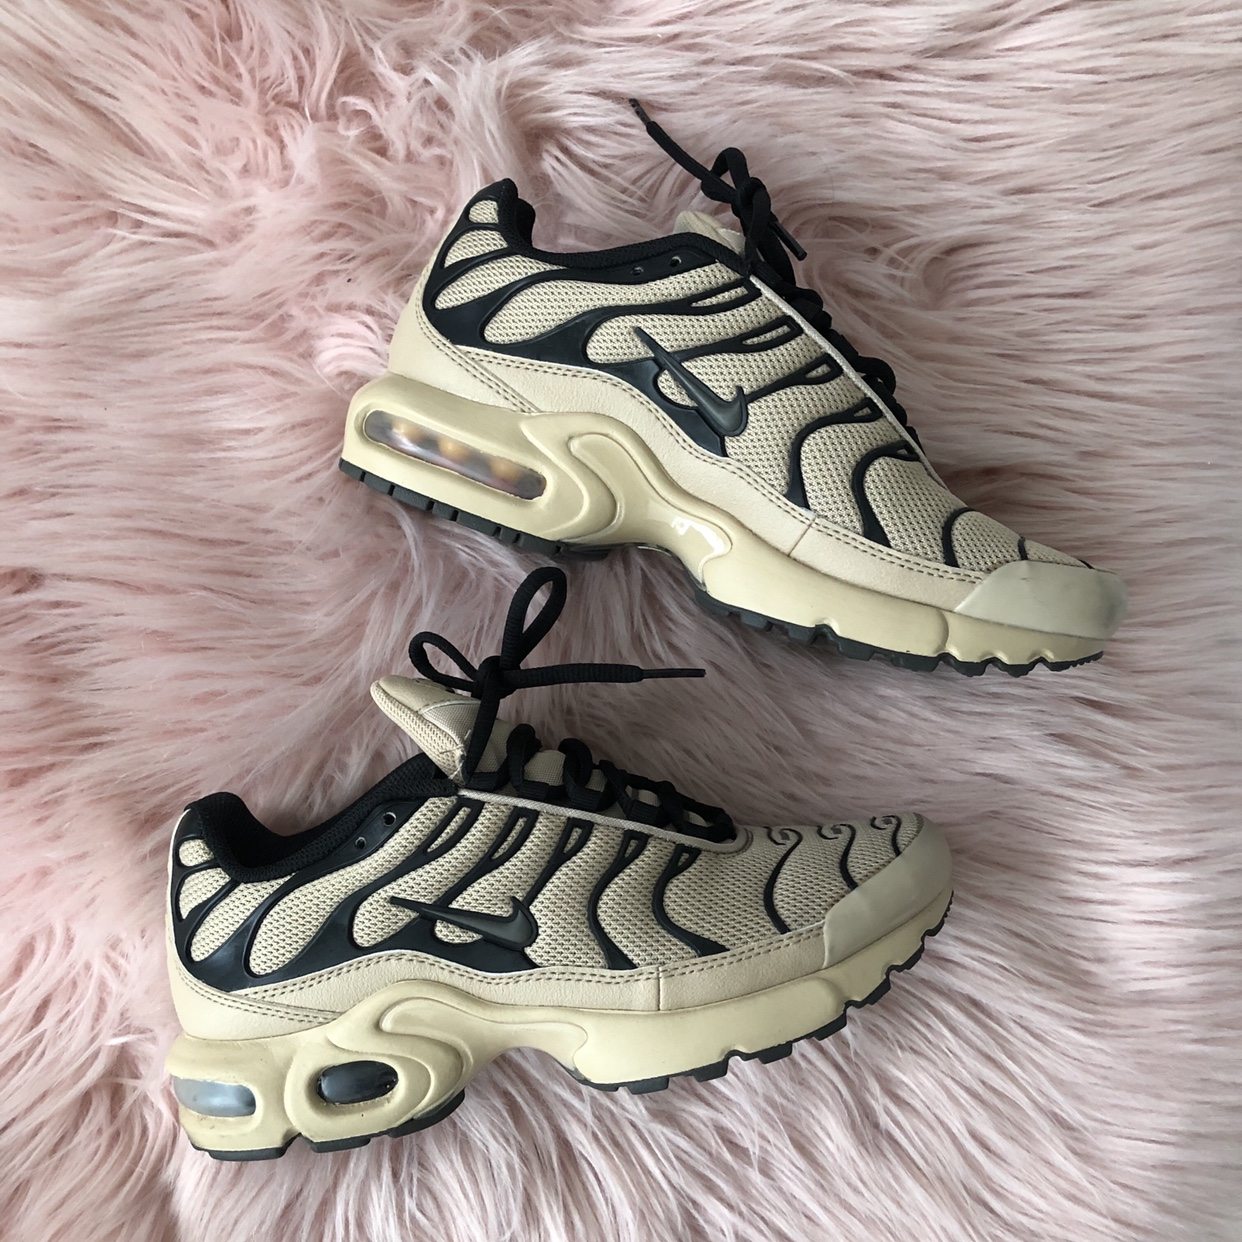 ✨🏜AIR MAX PLUS GS DESERT 🏜 ✨ Youth size